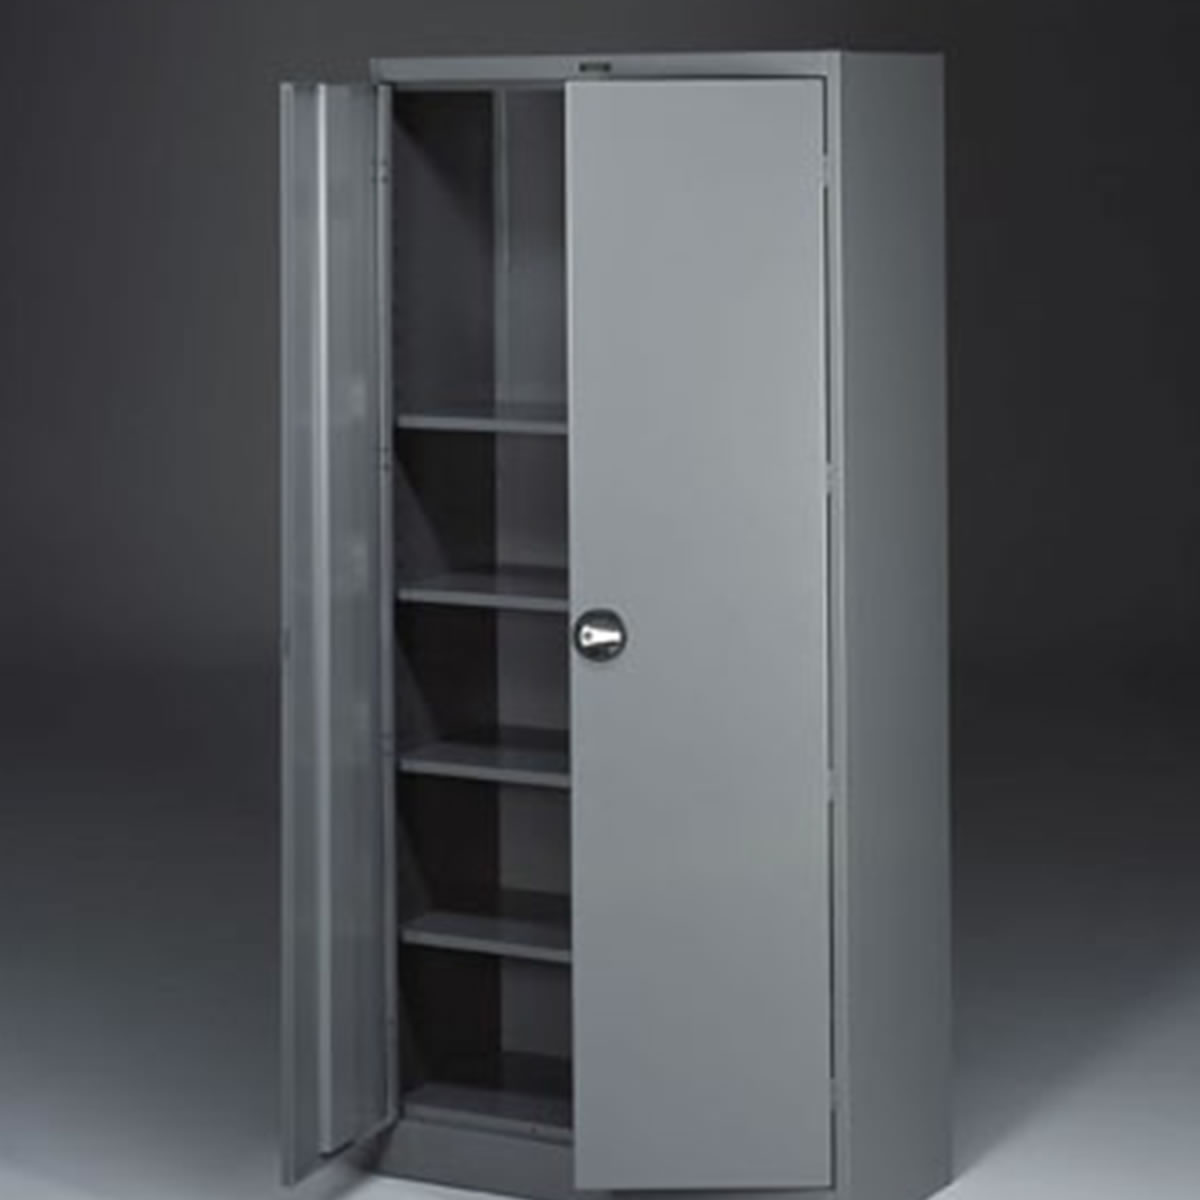 Square Secure Storage Cabinet For Supplies